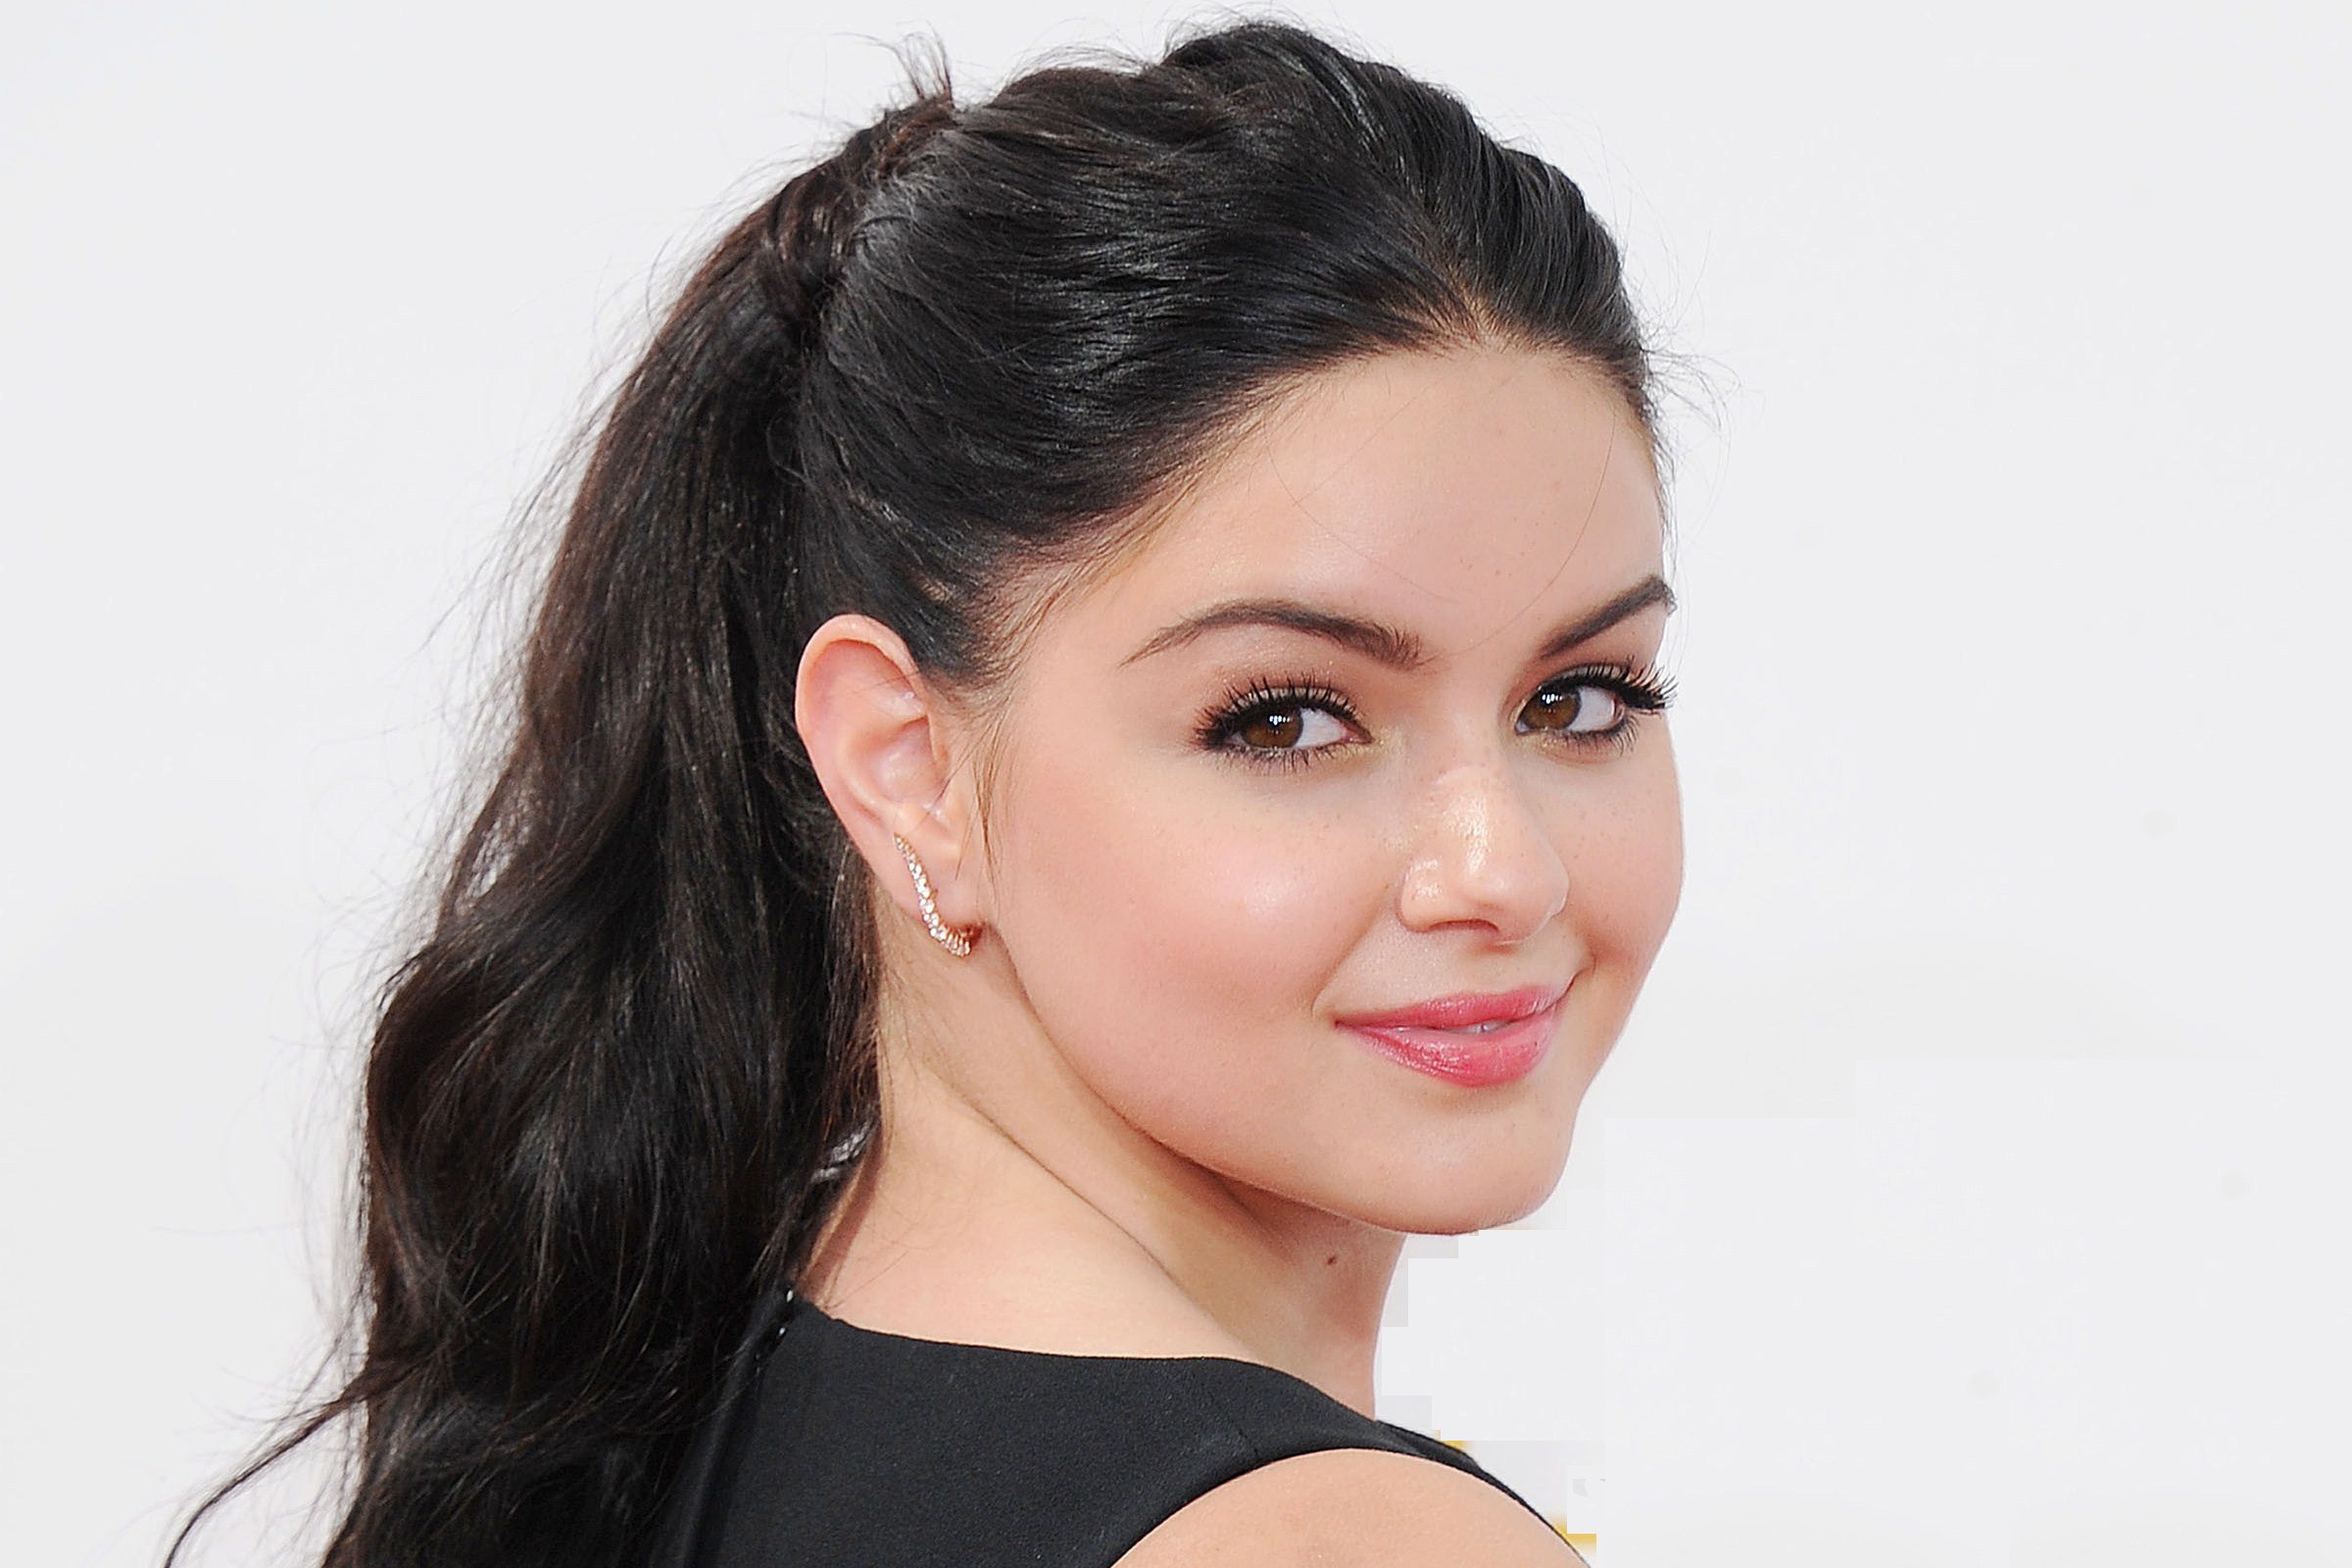 amazing ariel winter cute desktop laptop free images hd